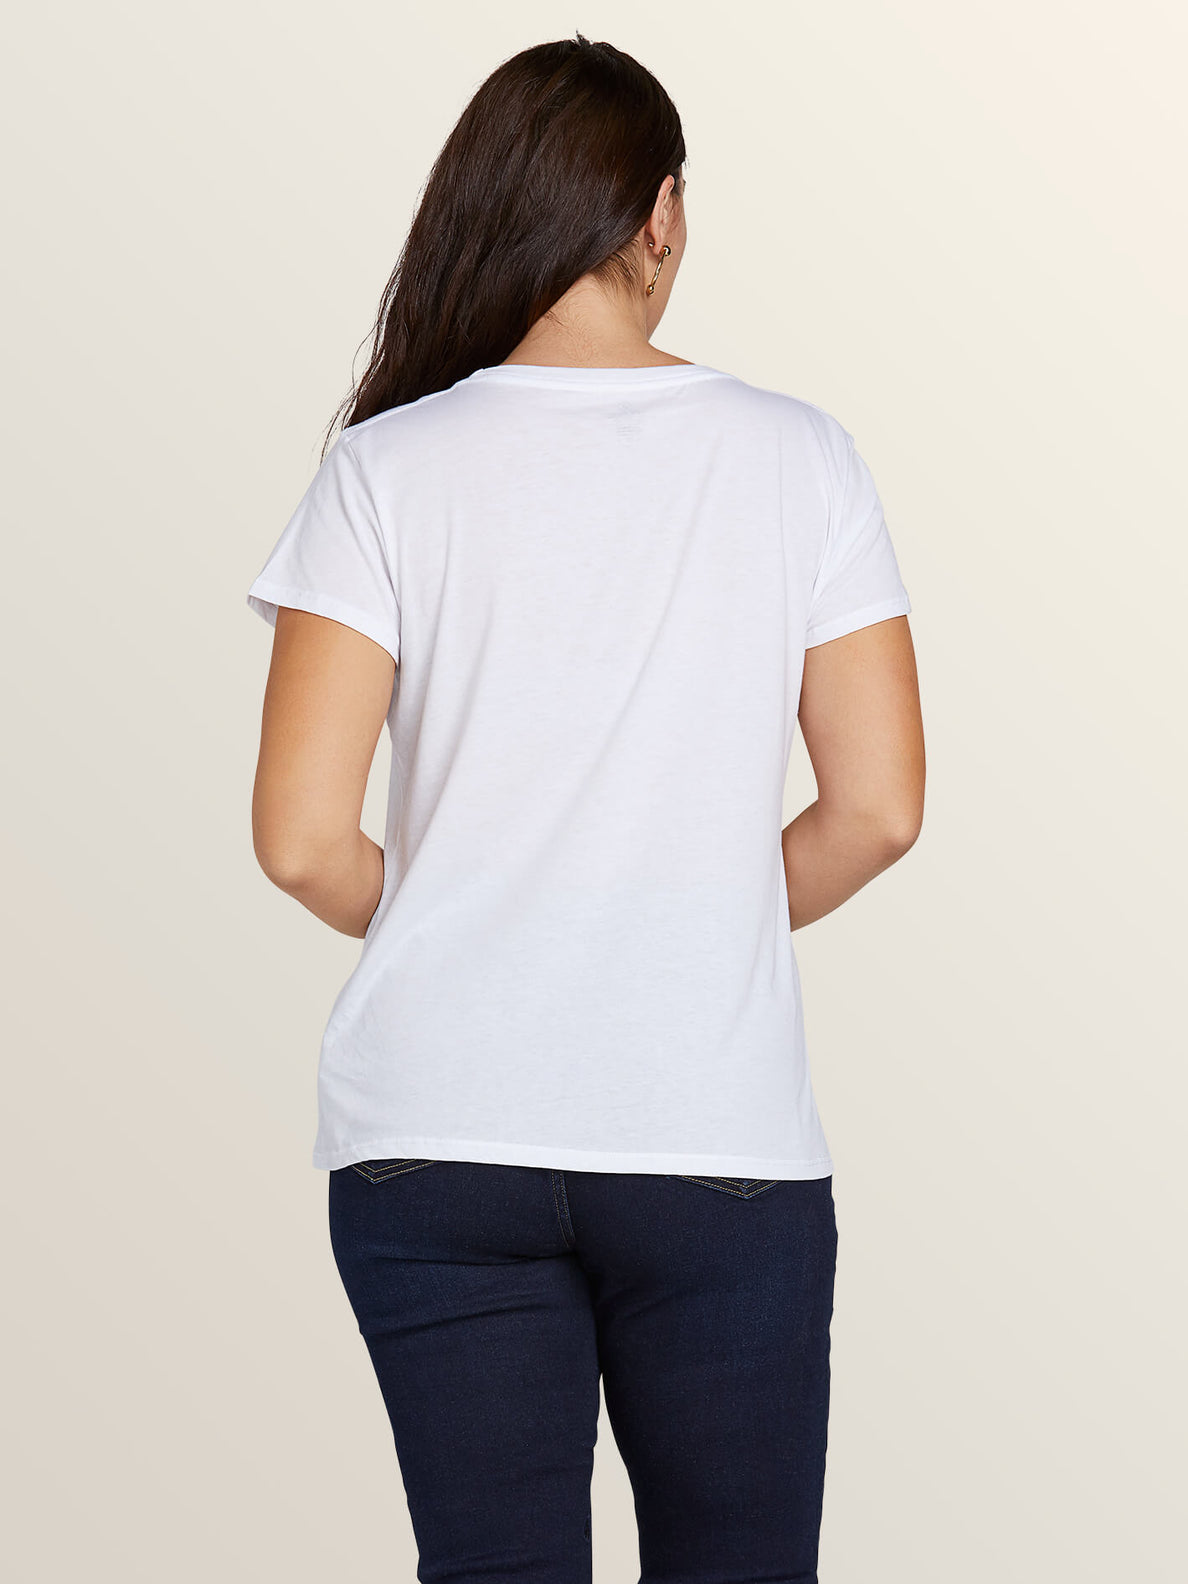 Easy Babe Rad 2 Tee In White, Back Extended Size View